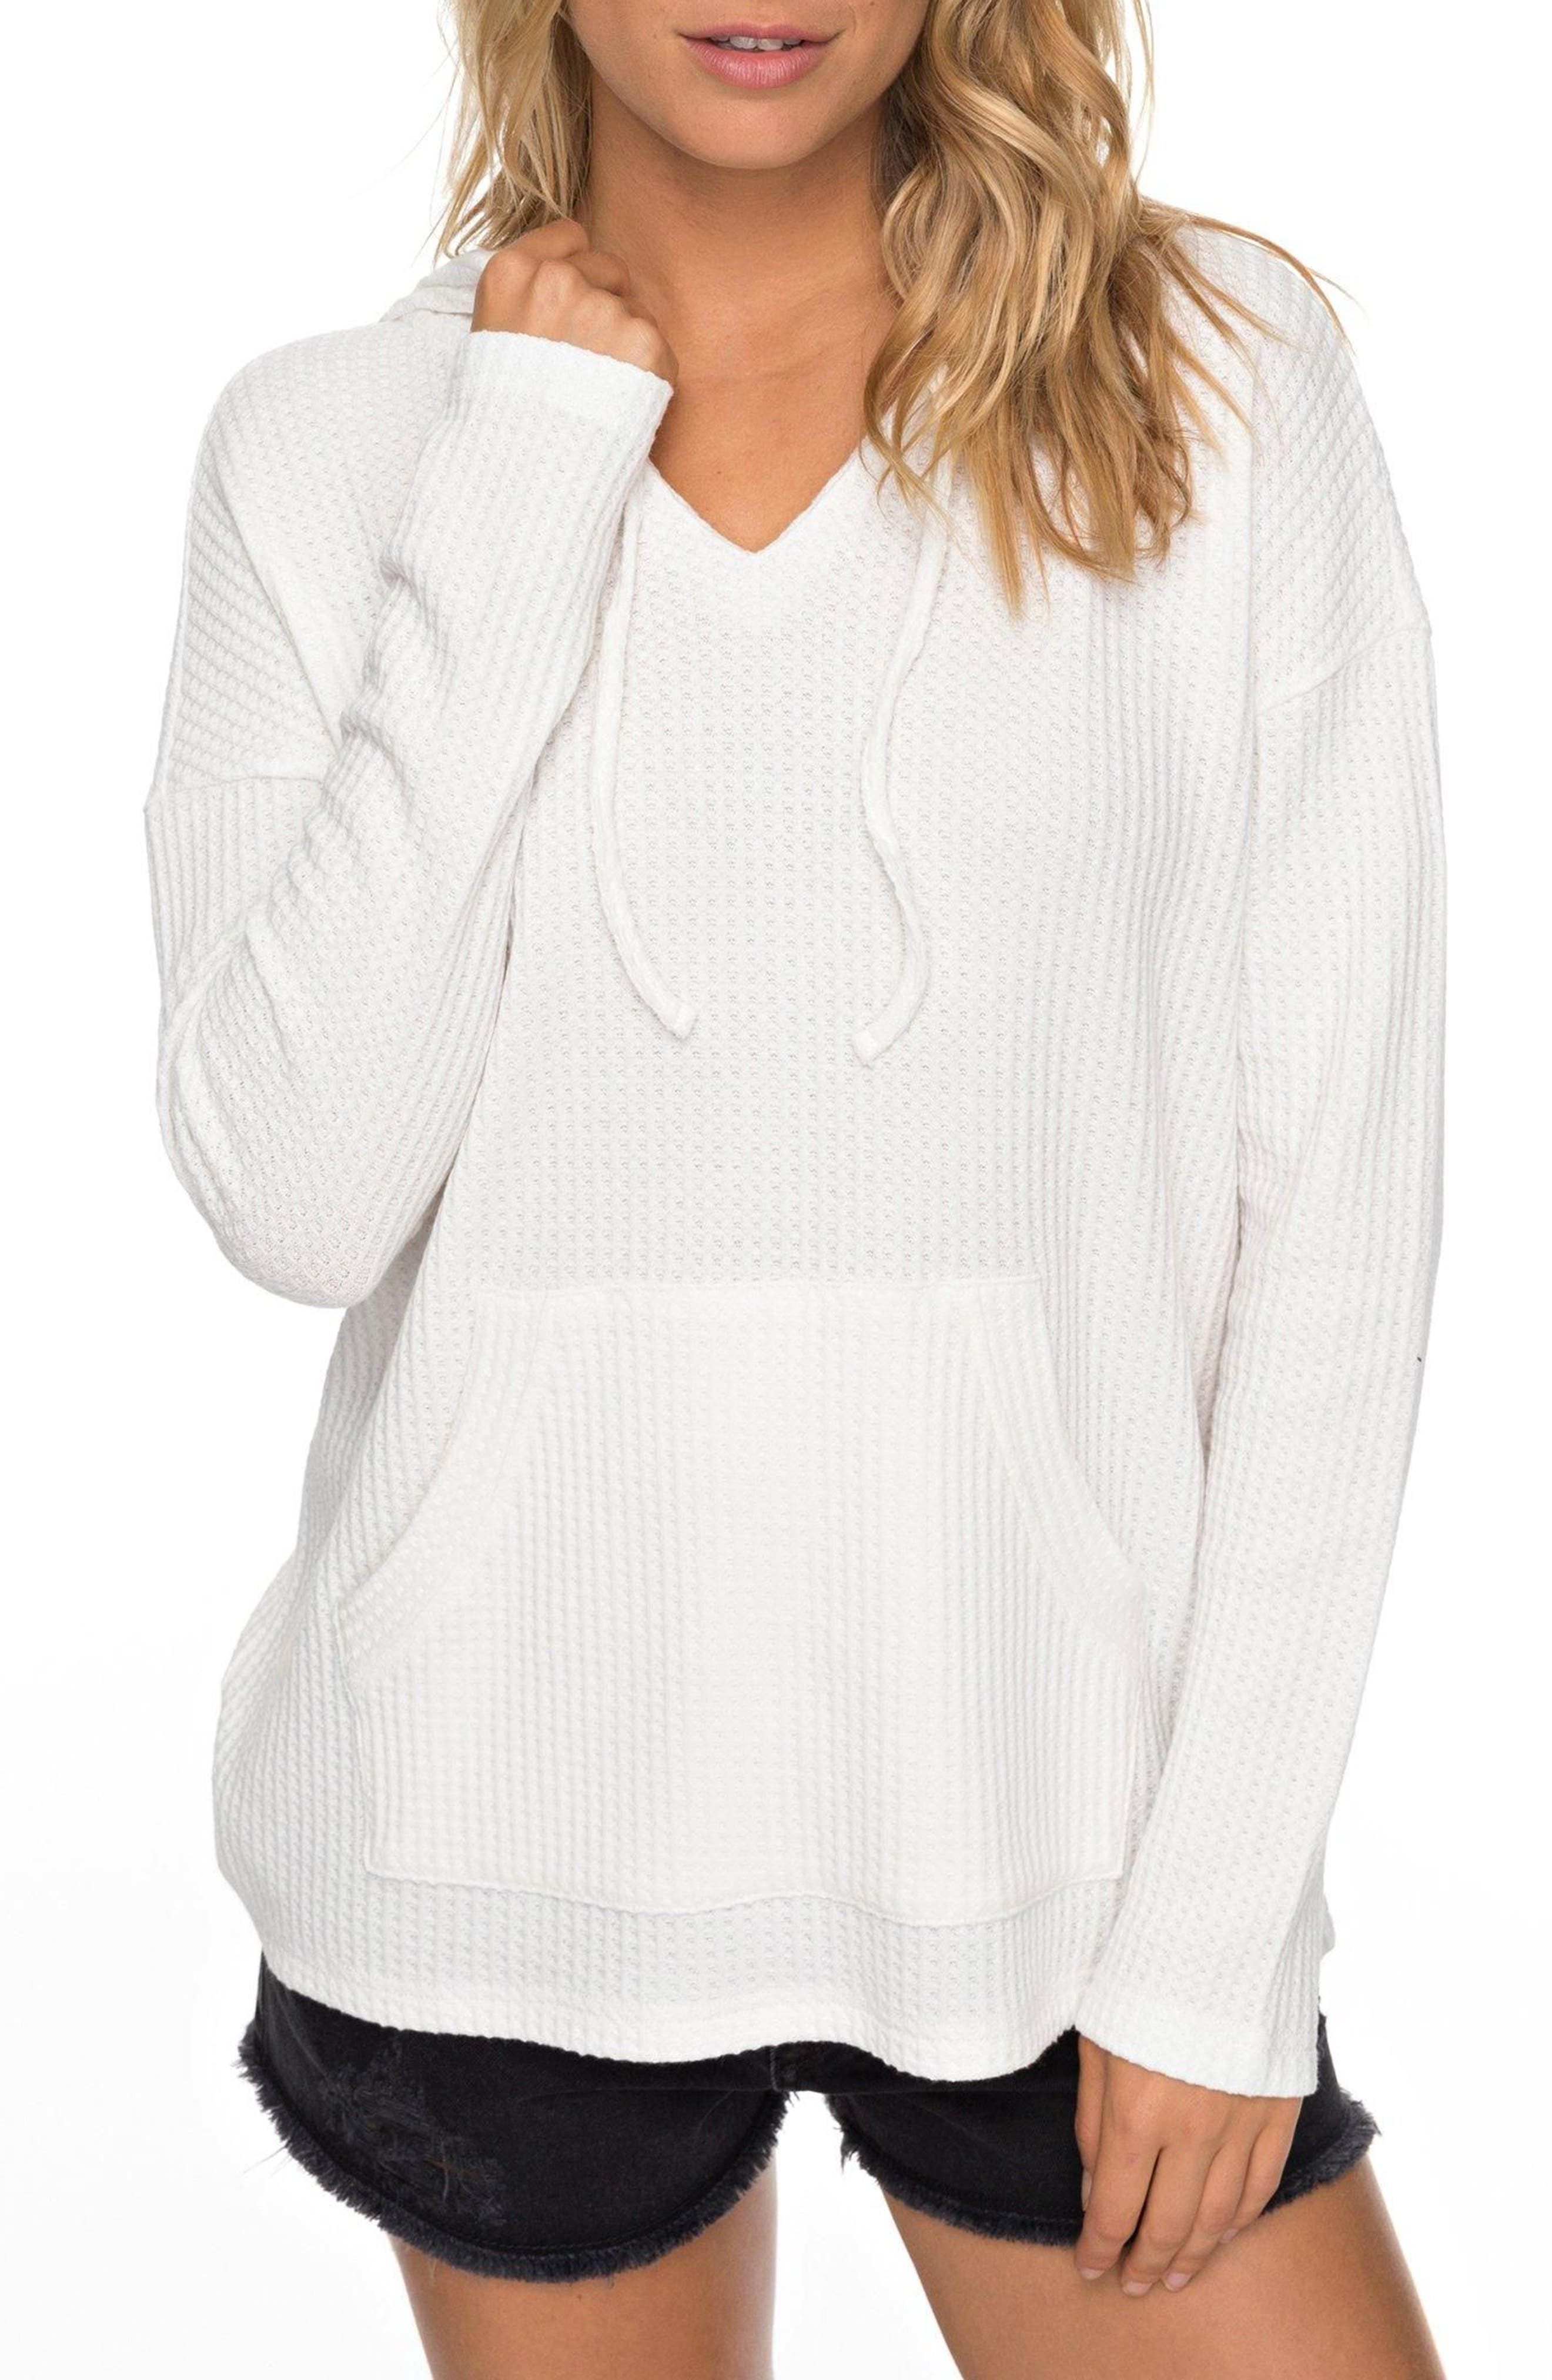 Roxy Sedona Thermal Hooded Top